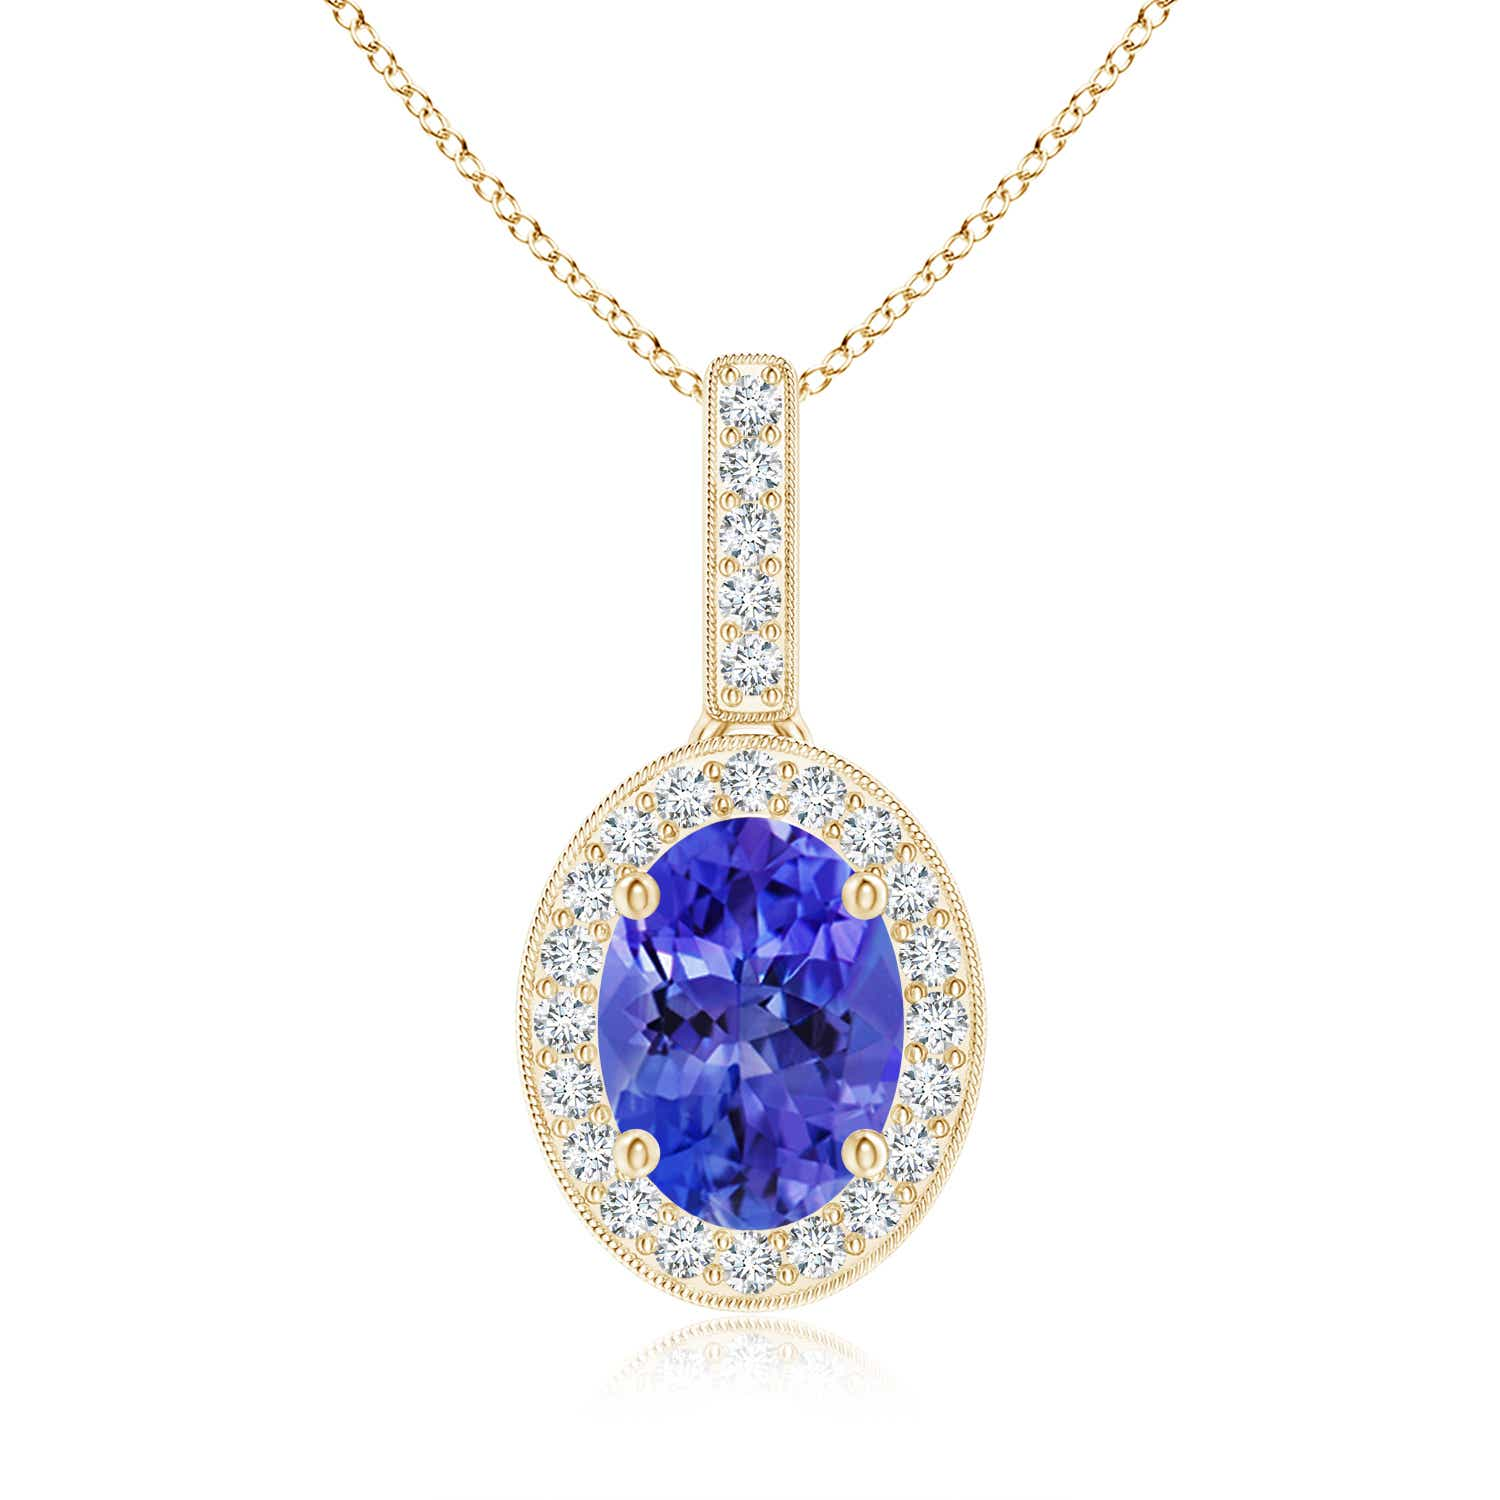 gold jewelry jewelers in kloiber item diamond tanzanite pendant and setting white